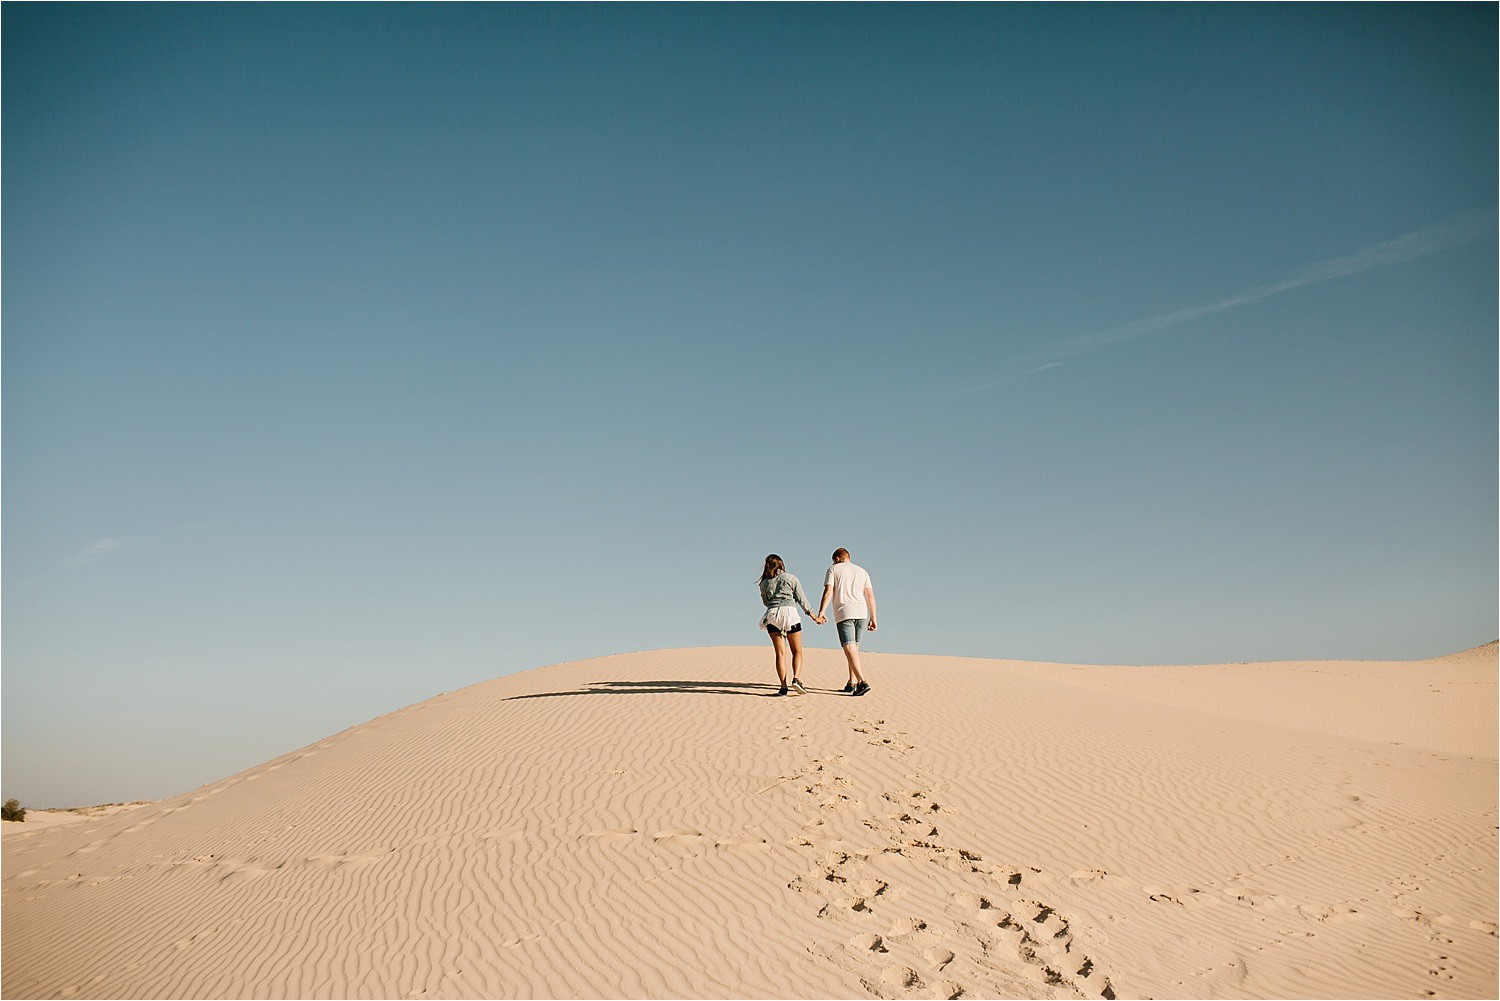 Lauren + Jacob __ a monahans sand dunes engagement session at sunrise by North Texas Wedding Photographer, Rachel Meagan Photography __ 49